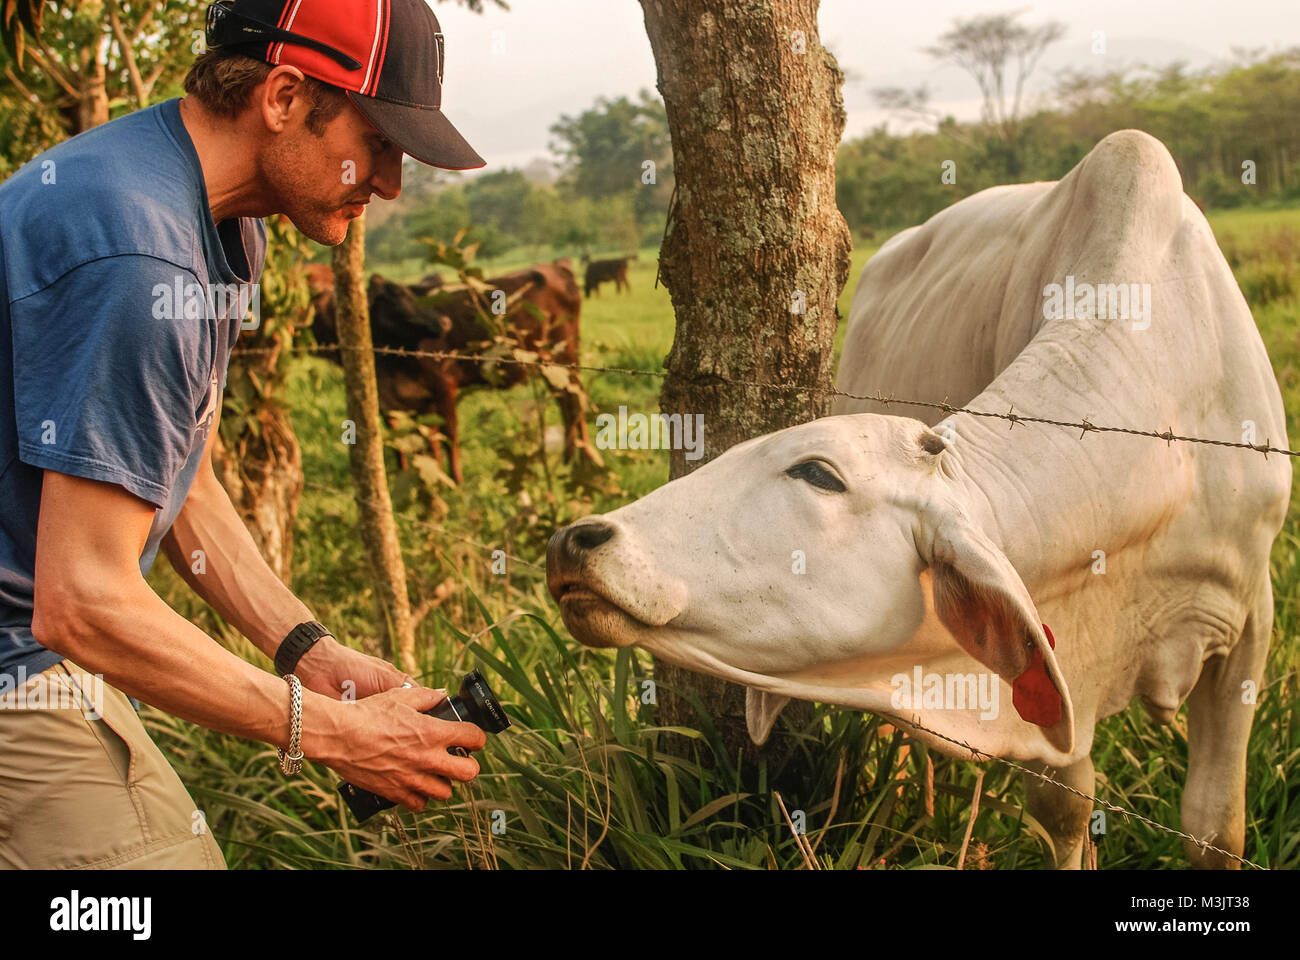 Interviewing a Cow - Stock Image